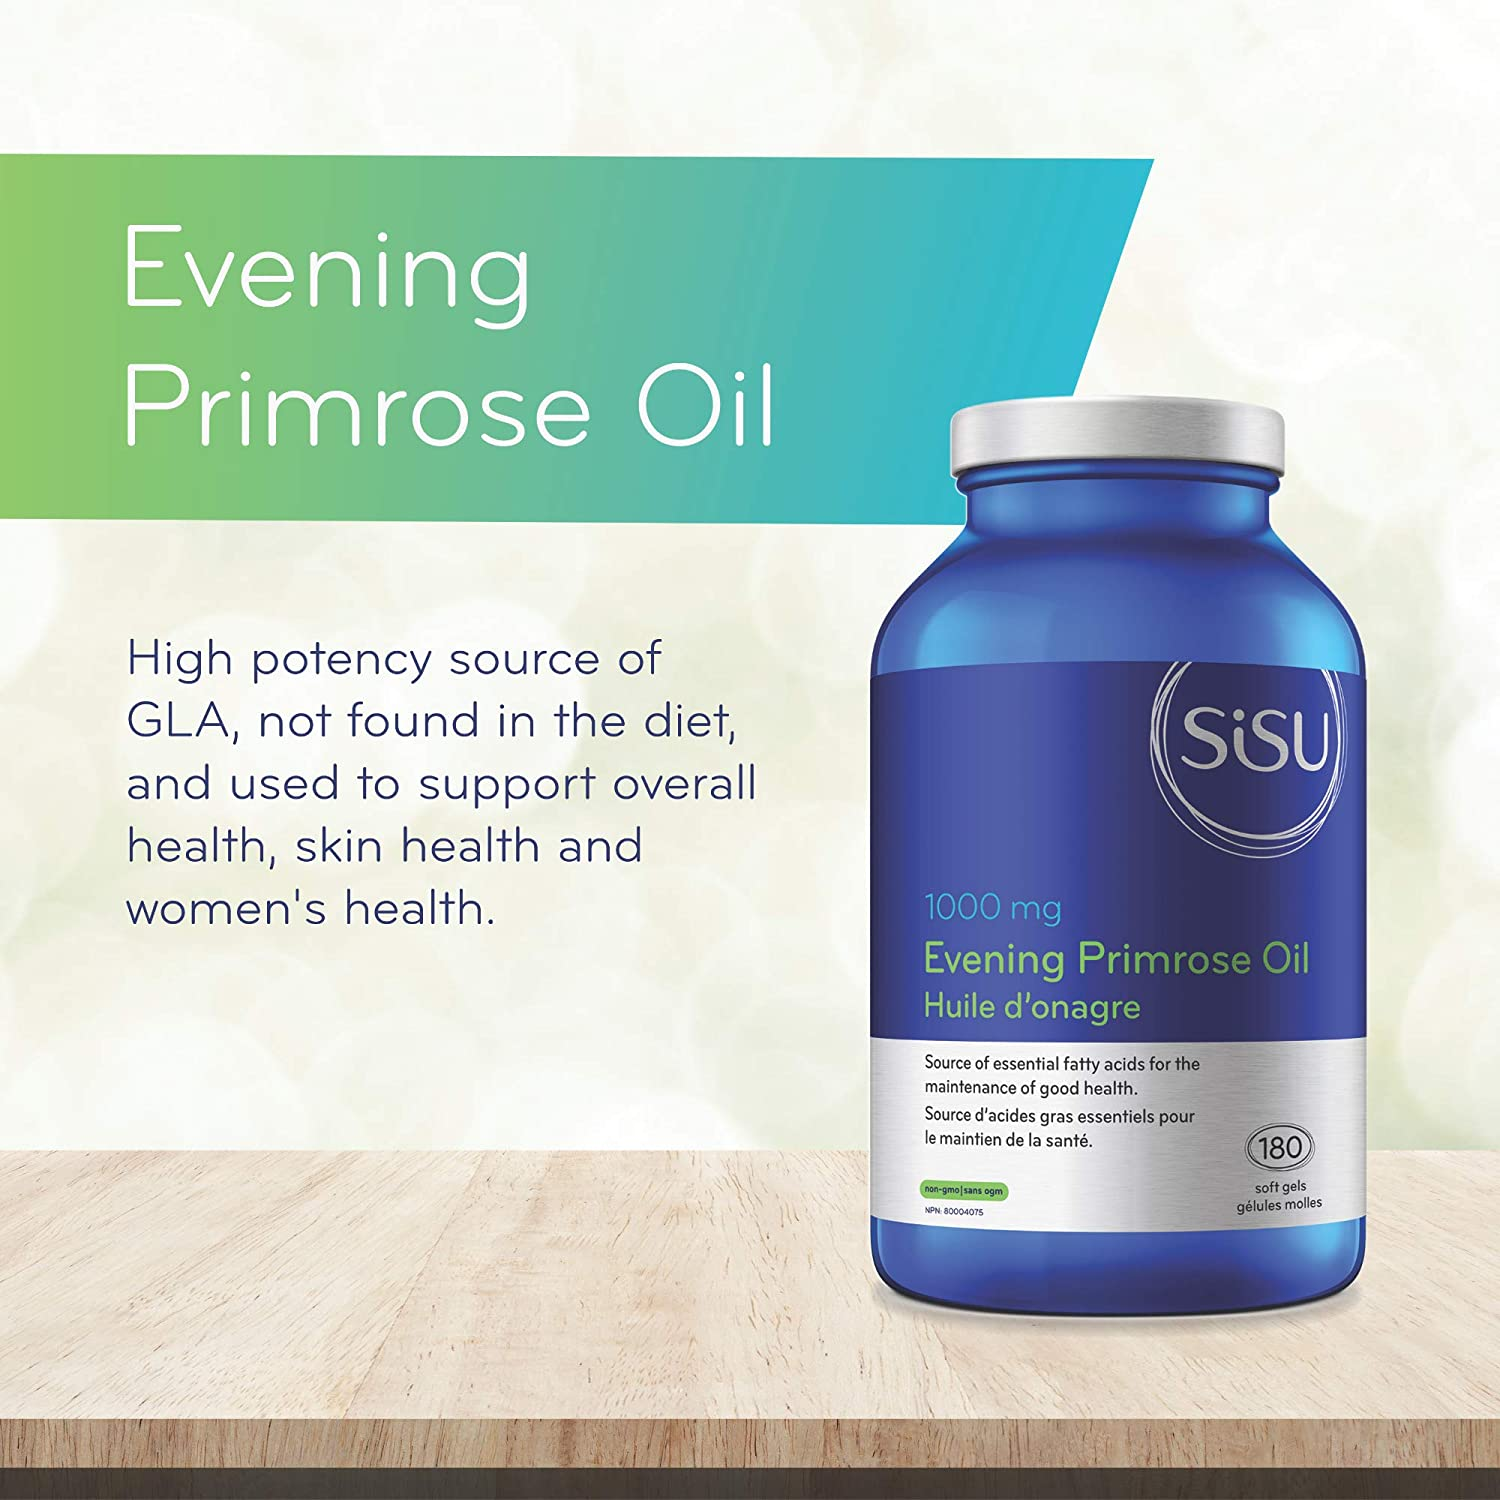 Sisu Evening Primrose Oil 1000 mg, 180 Softgels - Omega 6 Essential Fatty  Acid Supplement - Hormone Balance Support - Non-GMO, Soy, Gluten & Dairy  Free - 60 Servings: Amazon.ca: Health & Personal Care